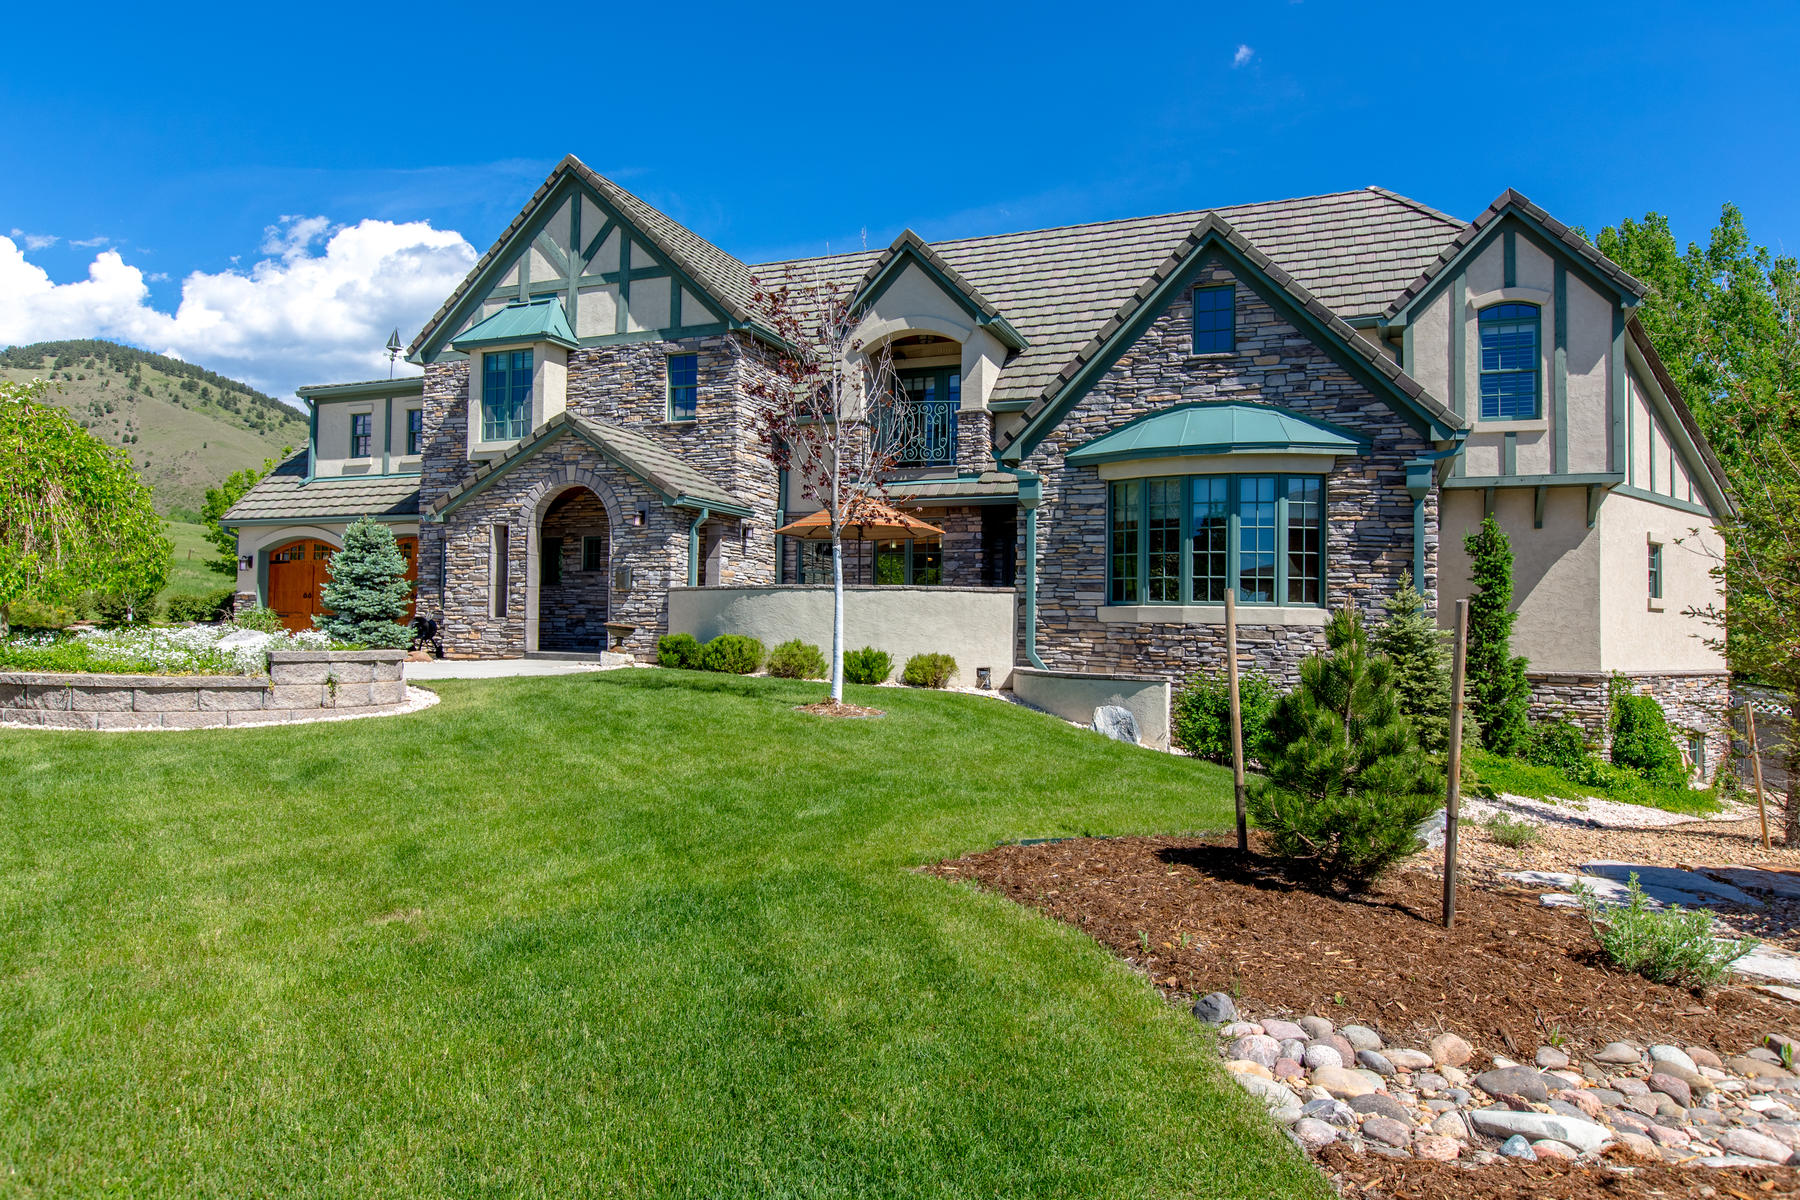 Property for Active at One Of A Kind Location With Impressive Views 1552 Jesse Ln Golden, Colorado 80403 United States